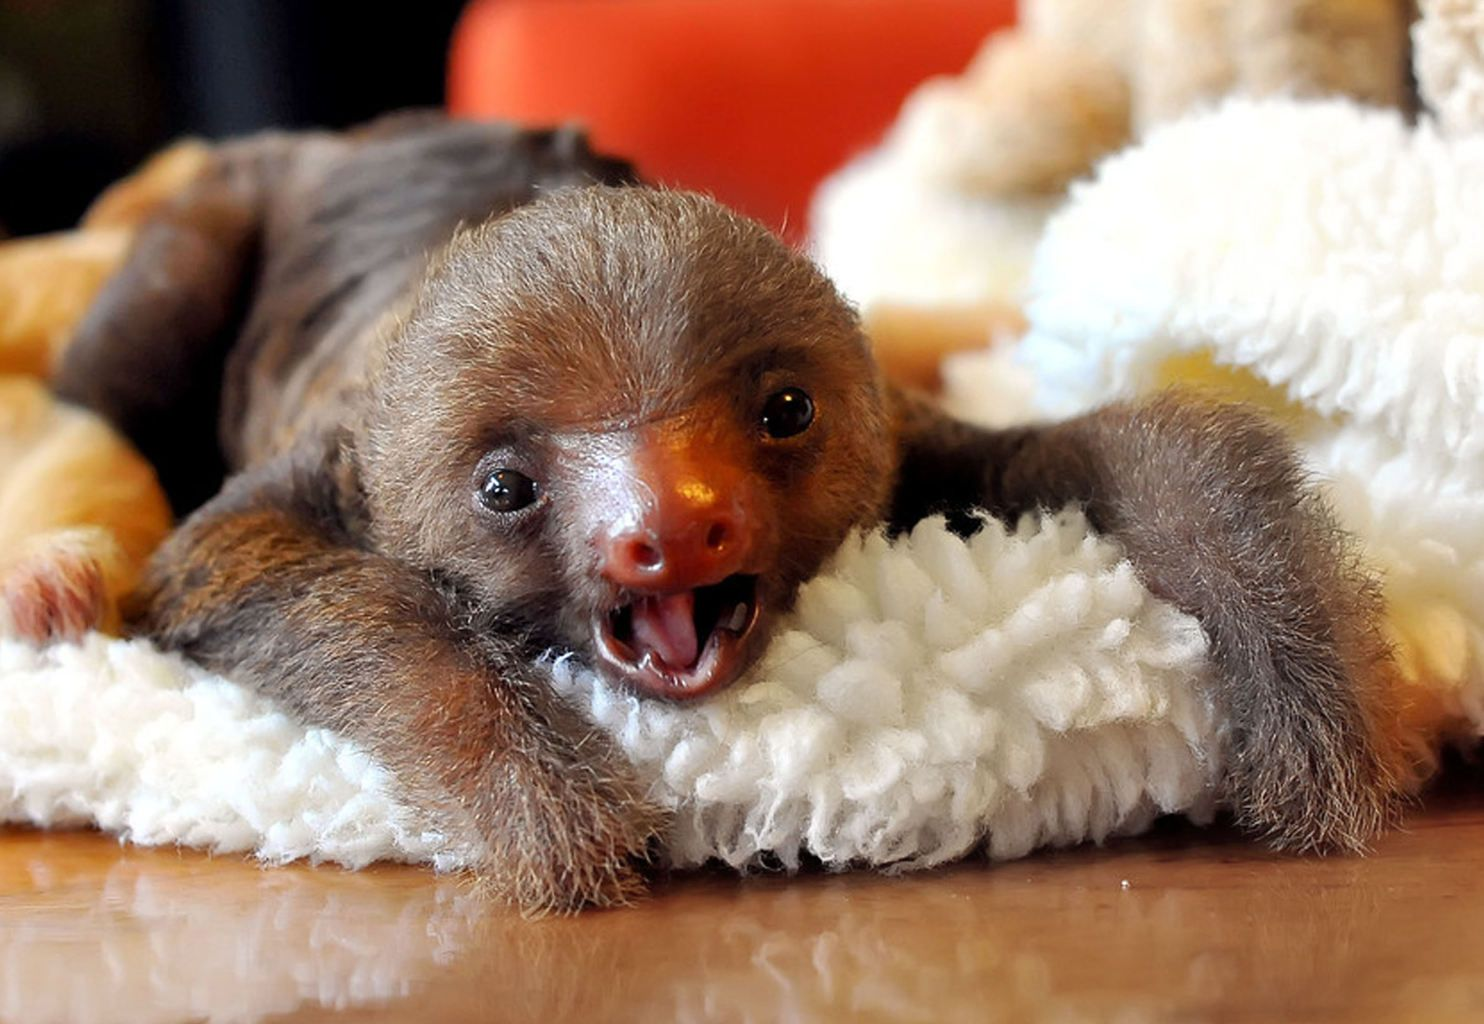 Sloth sanctuary   Just hanging out: Meet the adorable occupants of Costa Rica's 'sloth sanctuary' - Yahoo News UK